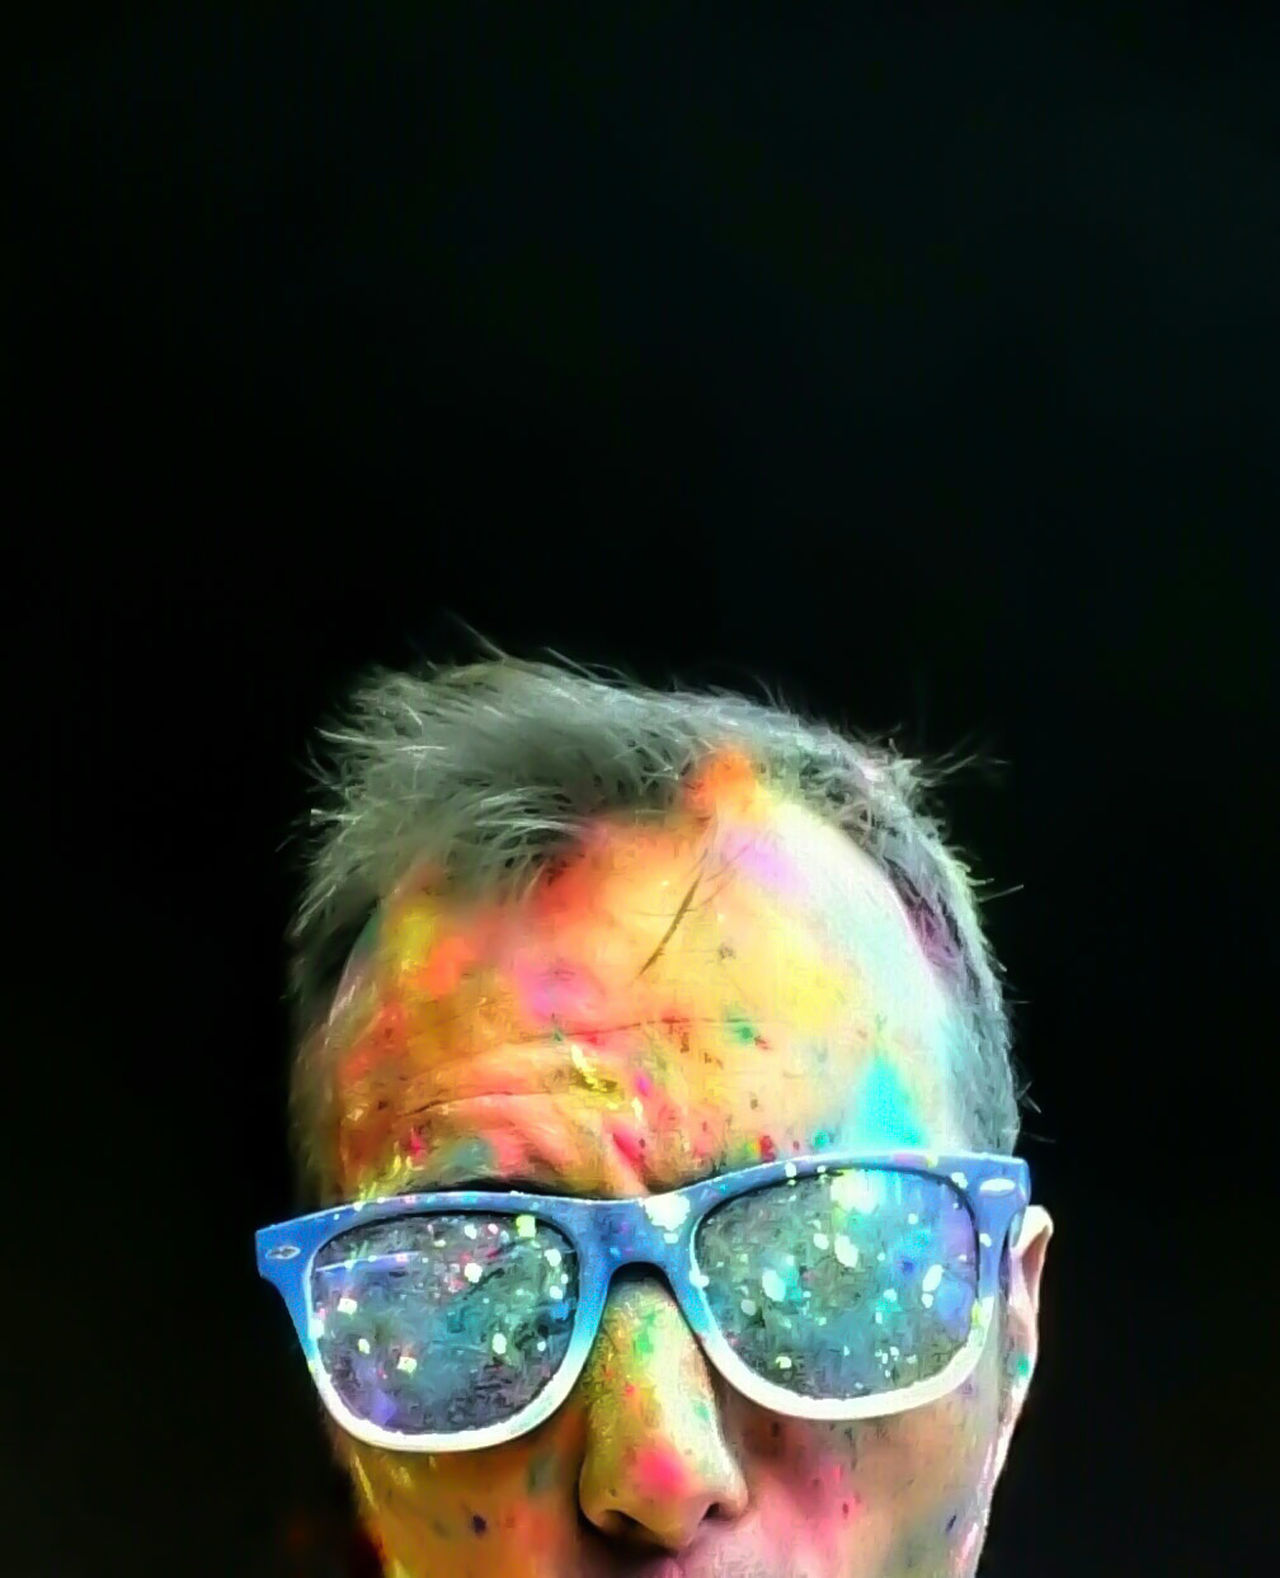 The Color Run People Watching People People Of EyeEm Self Portrait Portrait Selfportrait Color Portrait Colour Portrait Peoplephotography Retratos Portrait Photography Portrait Of A Friend Potrait_photography People Photography Pople Good Poeple Handsome Colorful The Colour Of Life The Colors Of Spring Eyeem Boy Boy Portraits Portrait Of A Man